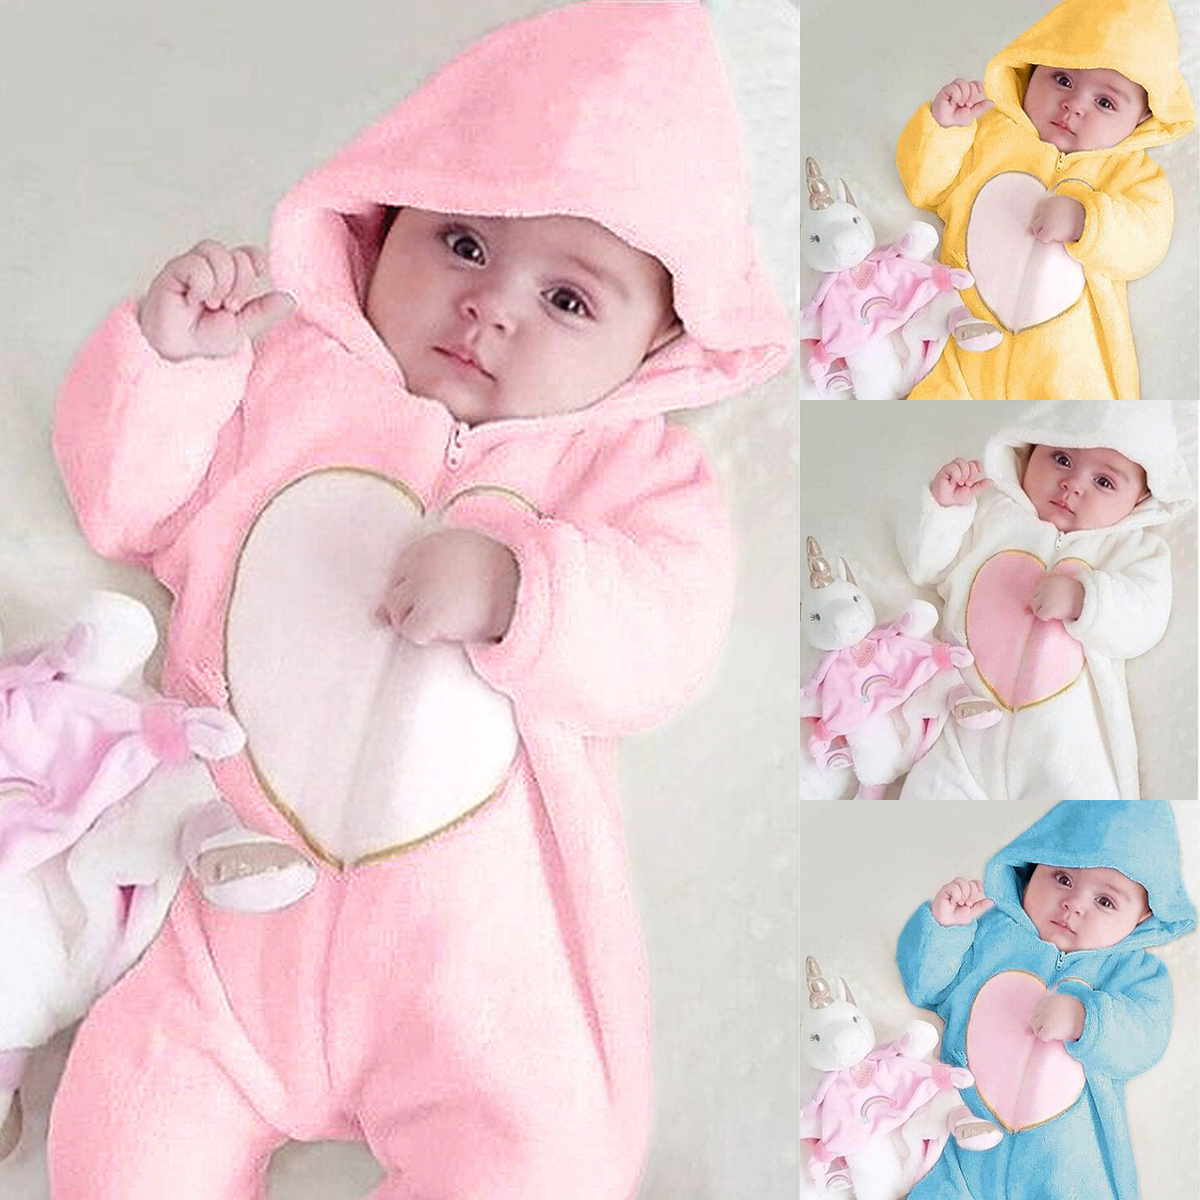 buy > 4 size dresses for baby girl, Up to 4% OFF